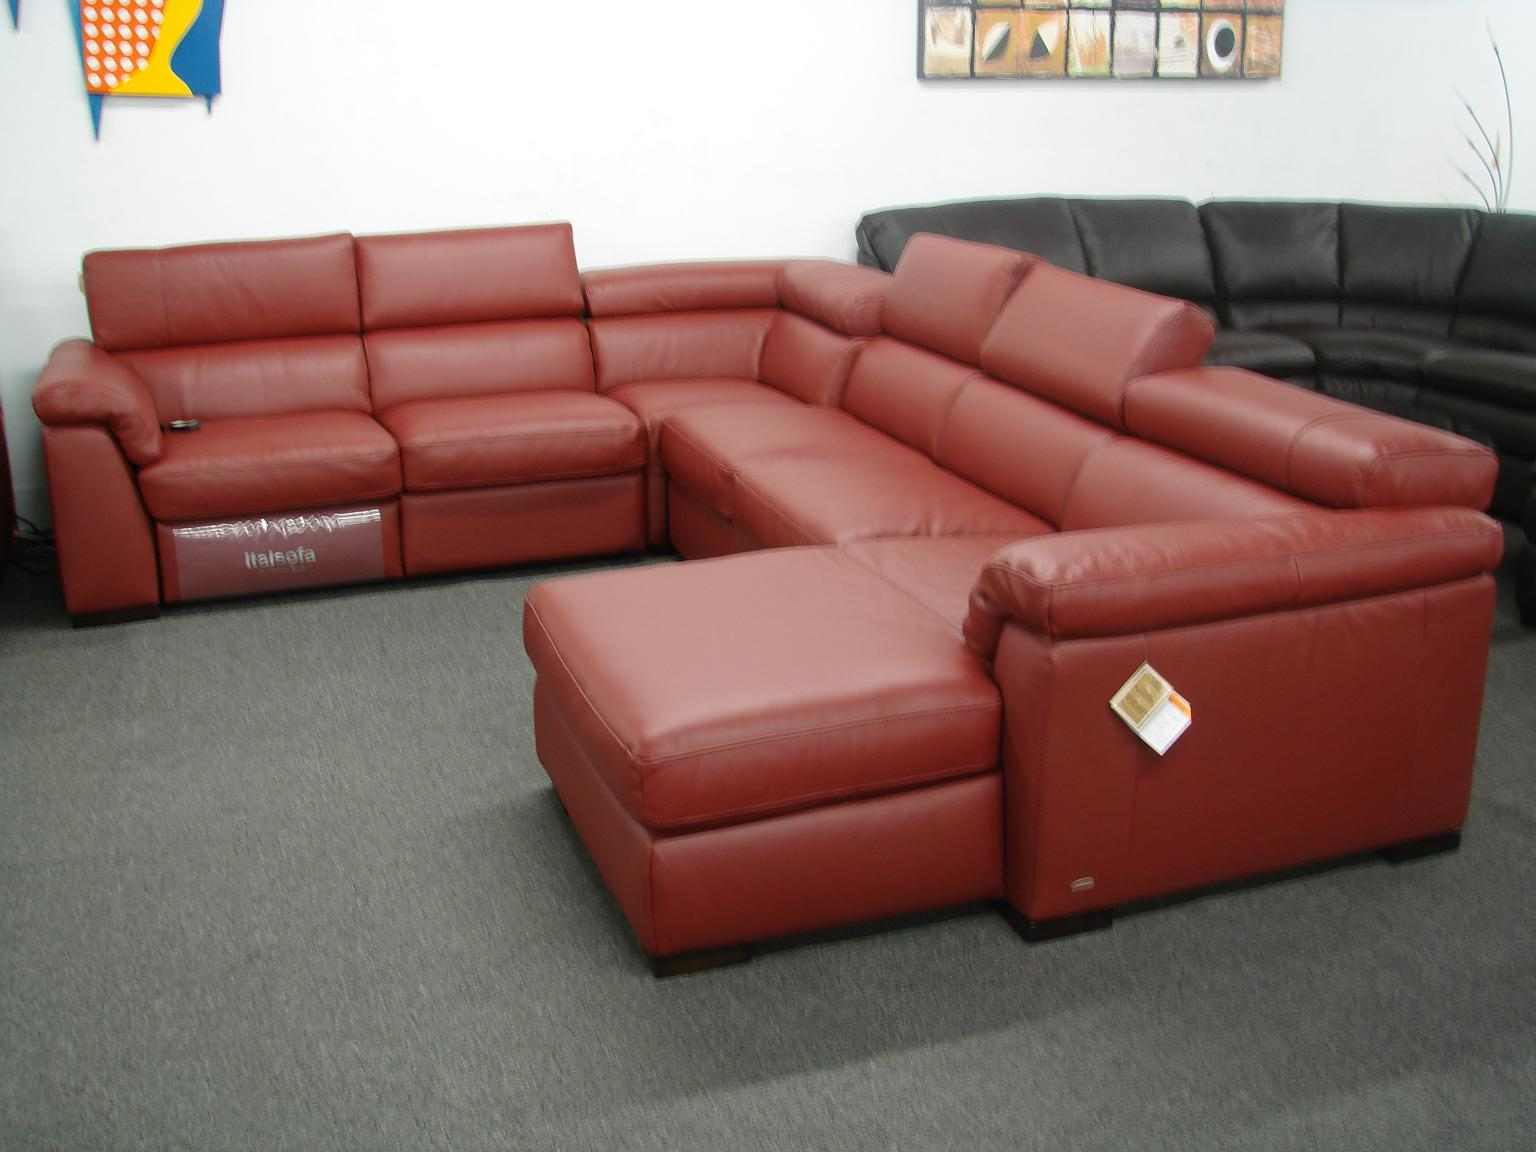 italsofa leather chair sofa tv furniture xxx suck cock